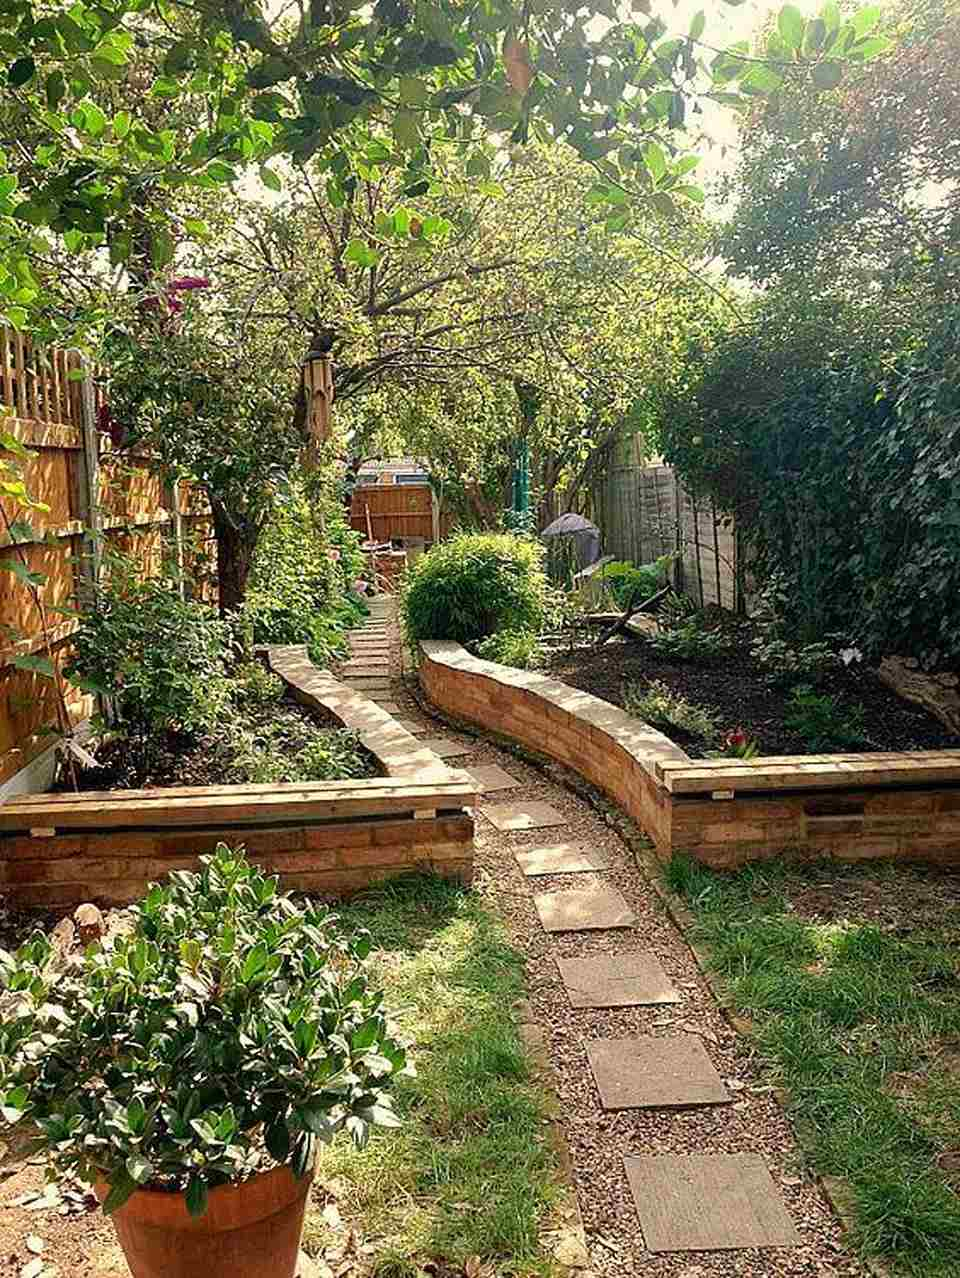 15 Beautiful and Practical Raised Bed Garden Designs is part of Home vegetable garden design, Small garden design, Small garden design ideas low maintenance, Garden layout, Vegetable garden design, Home vegetable garden - A raised bed garden offers many advantages to inground gardening; the choices are limited only by your creativity  Here's some inspiration